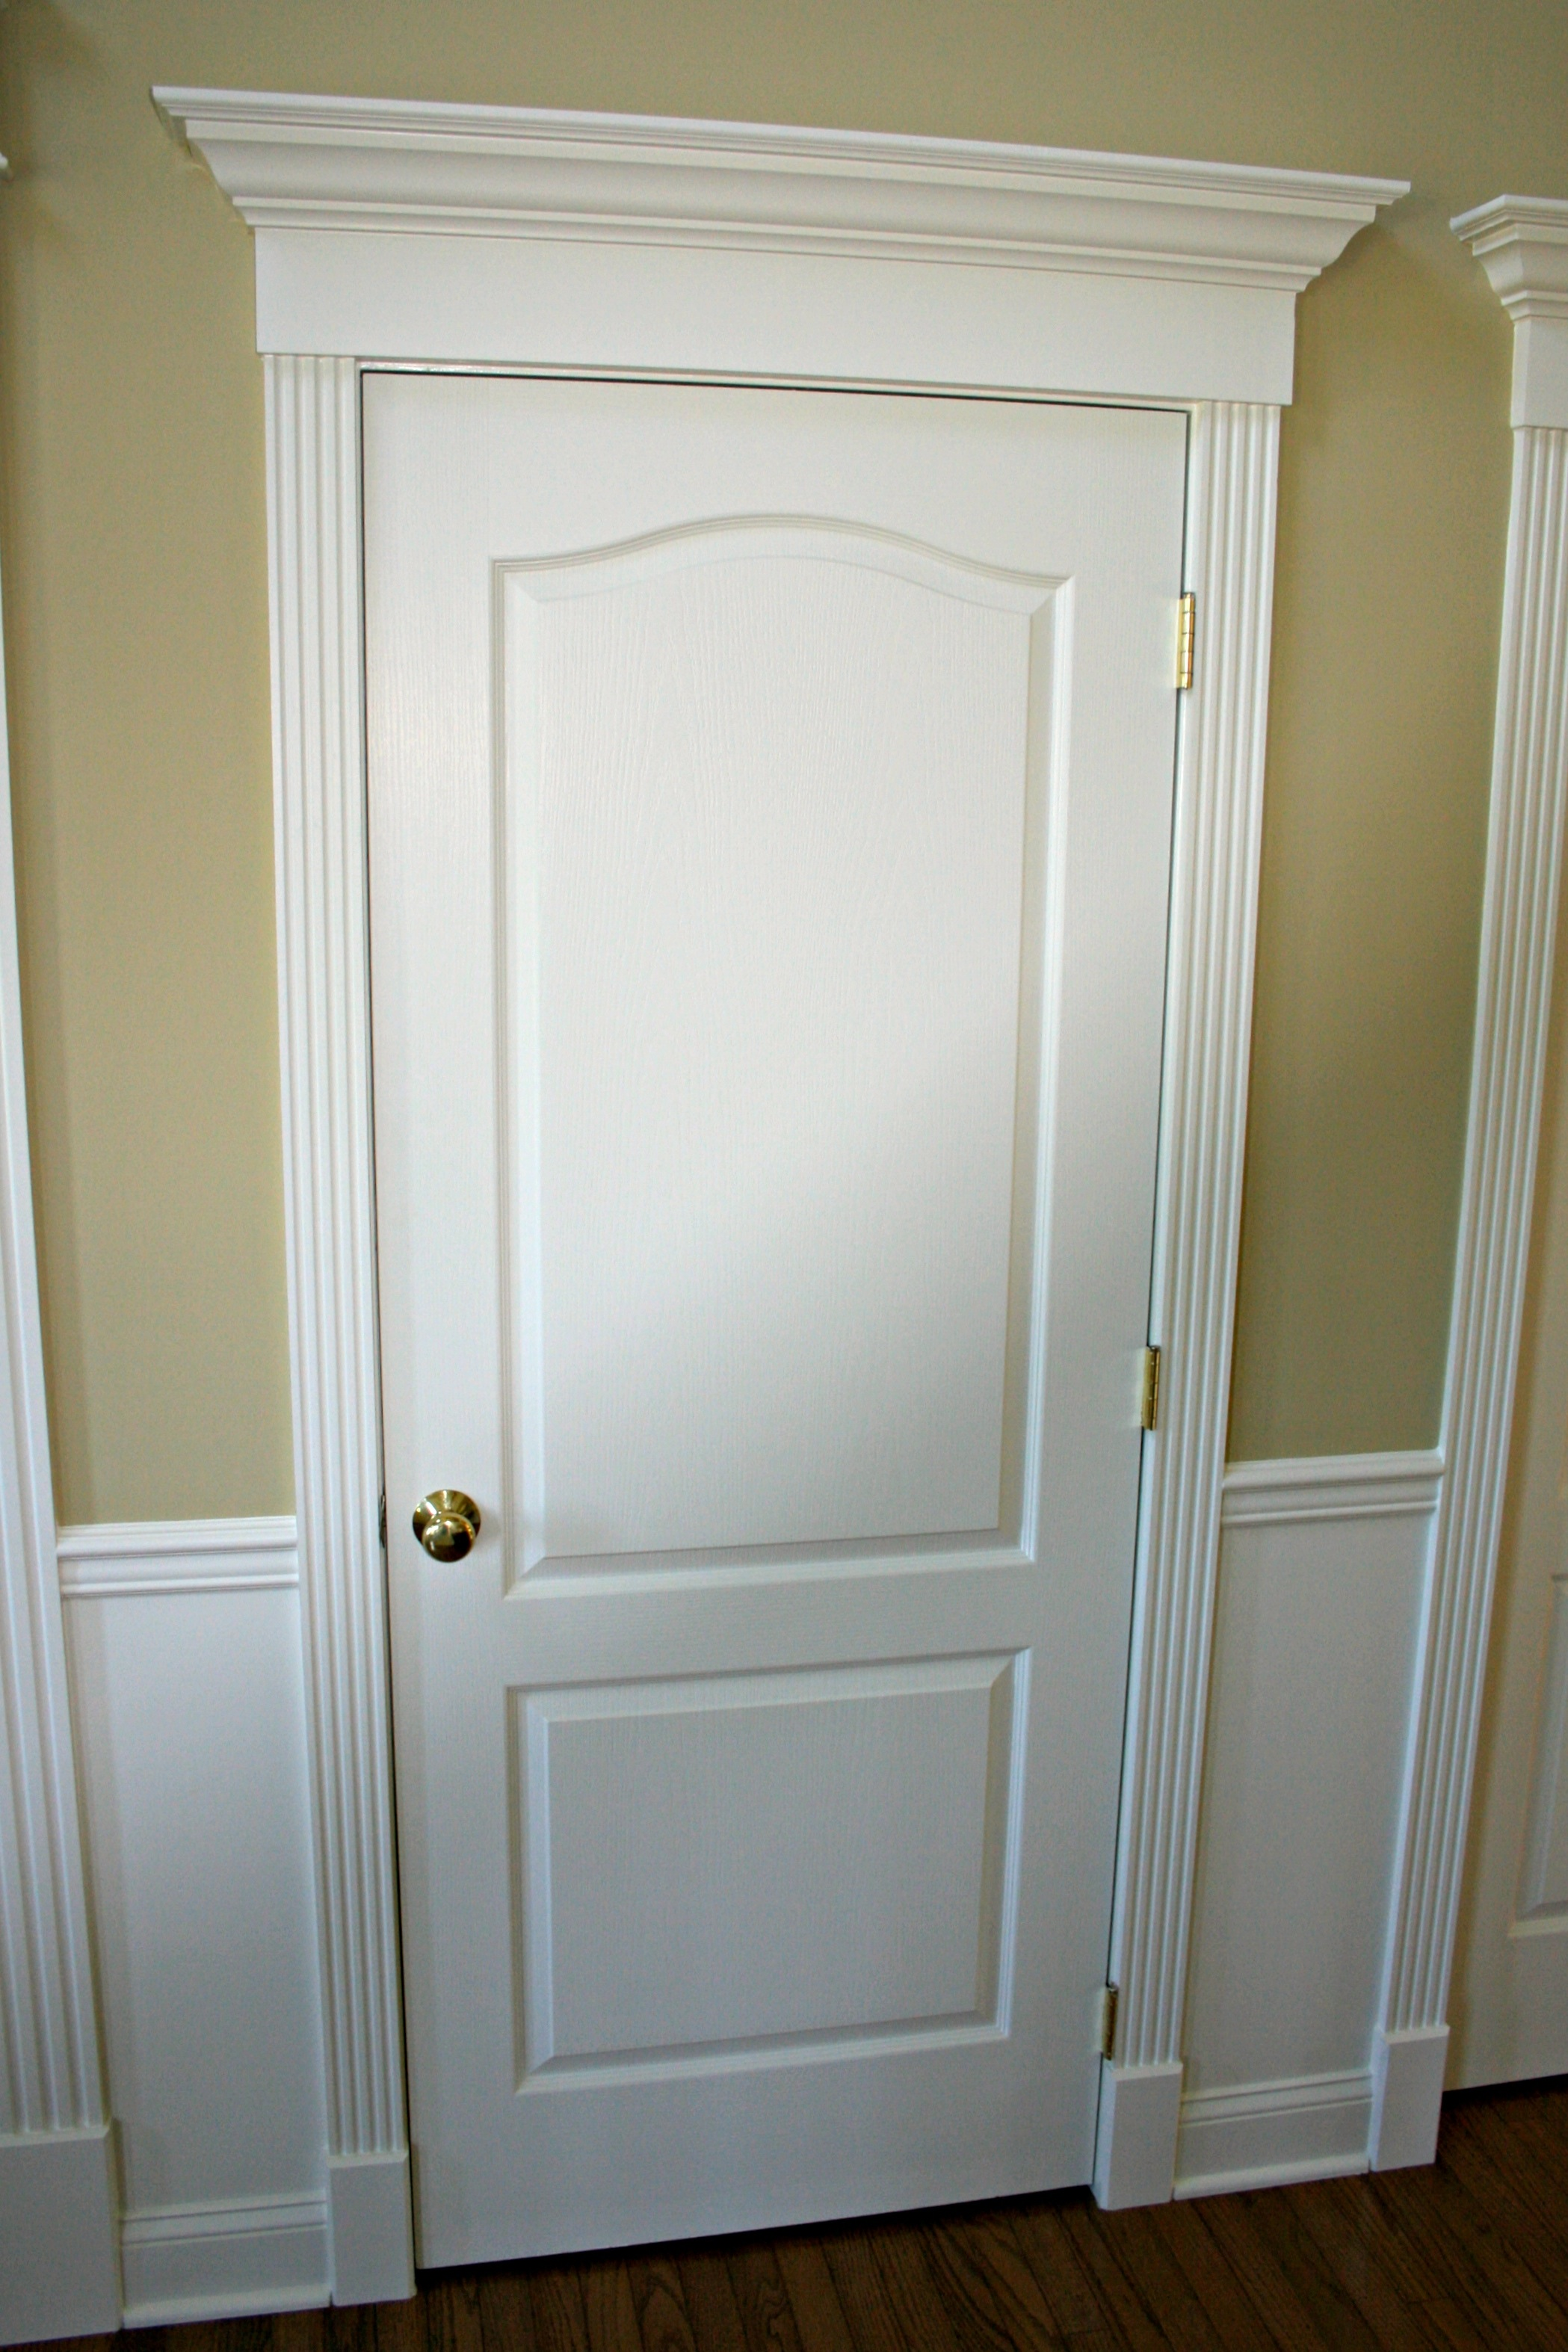 Window trim molding - Door Window Casing 05